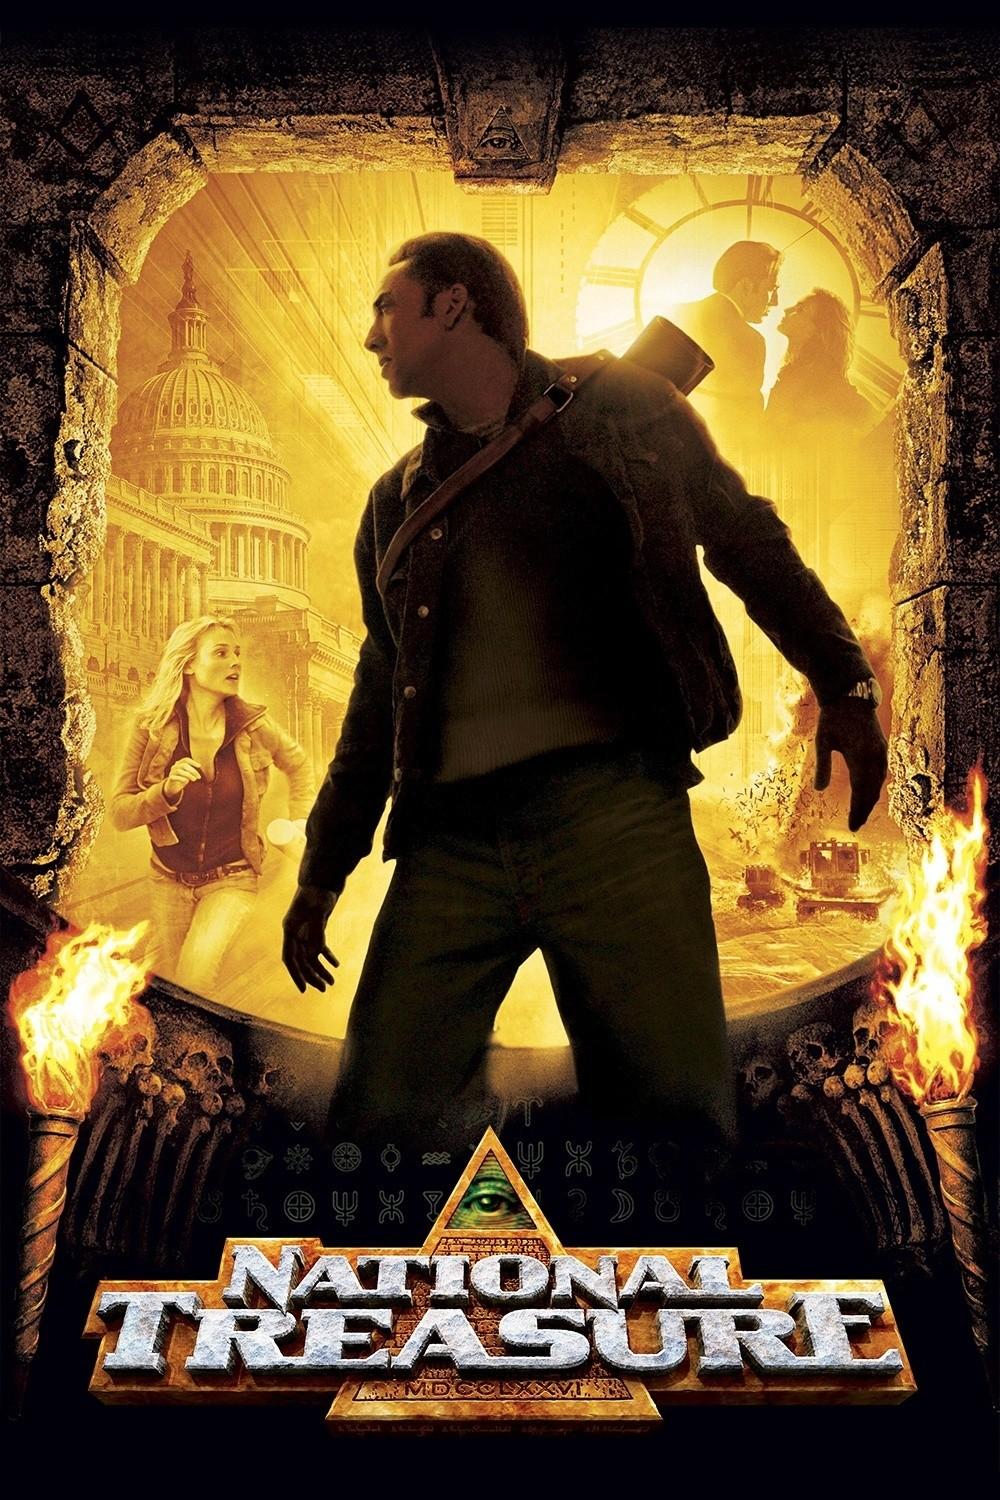 National treasure movie poster